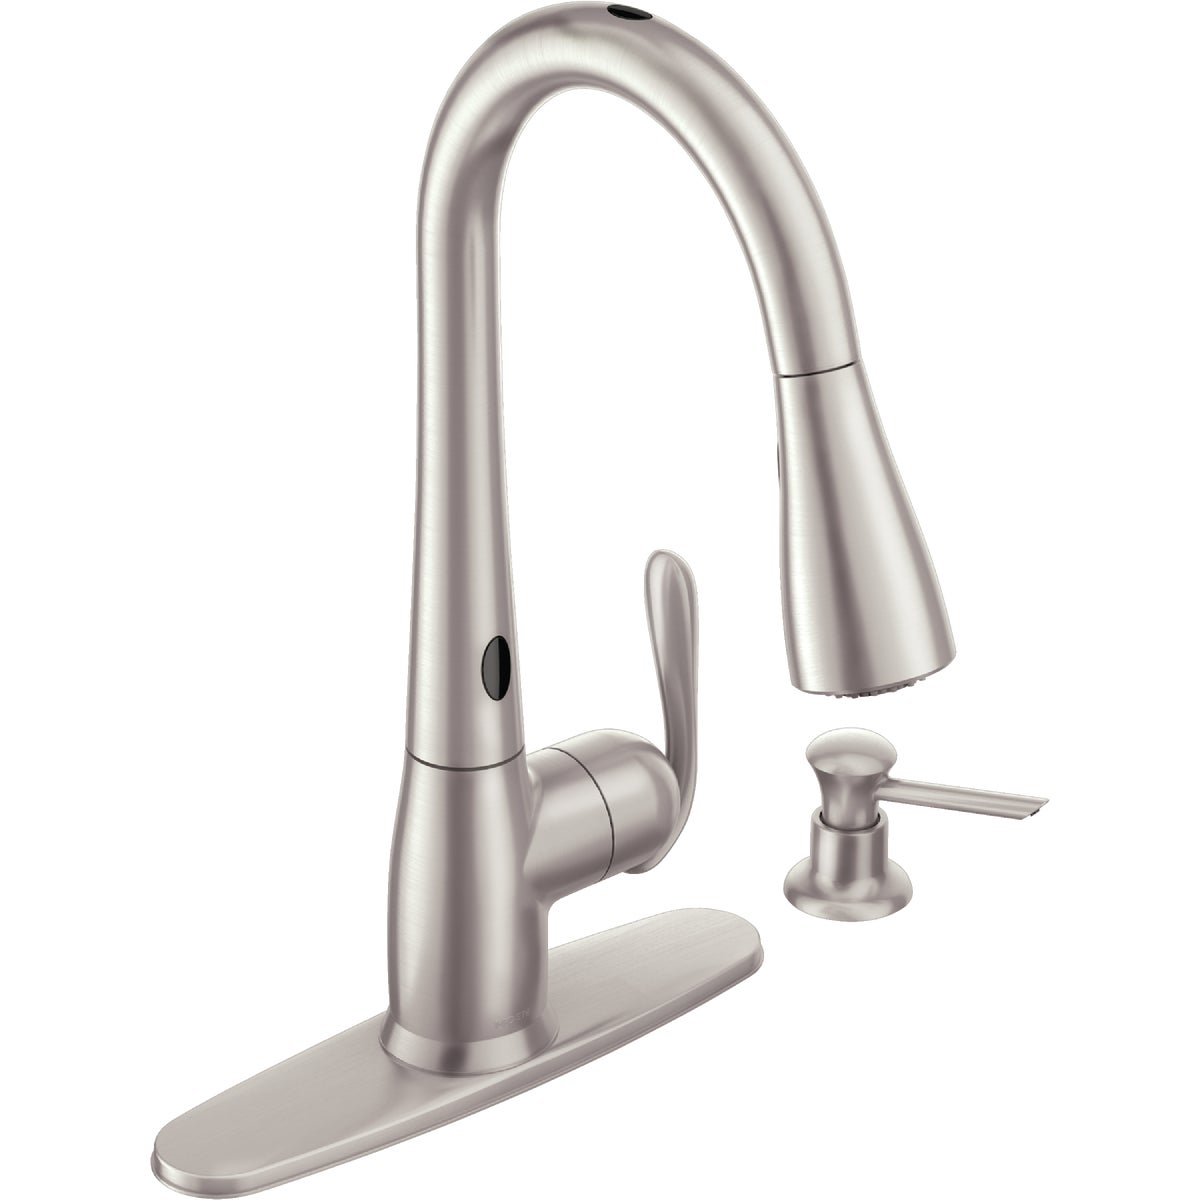 1H SRS KITCHEN FAUCET - 87350ESRS by Moen Inc